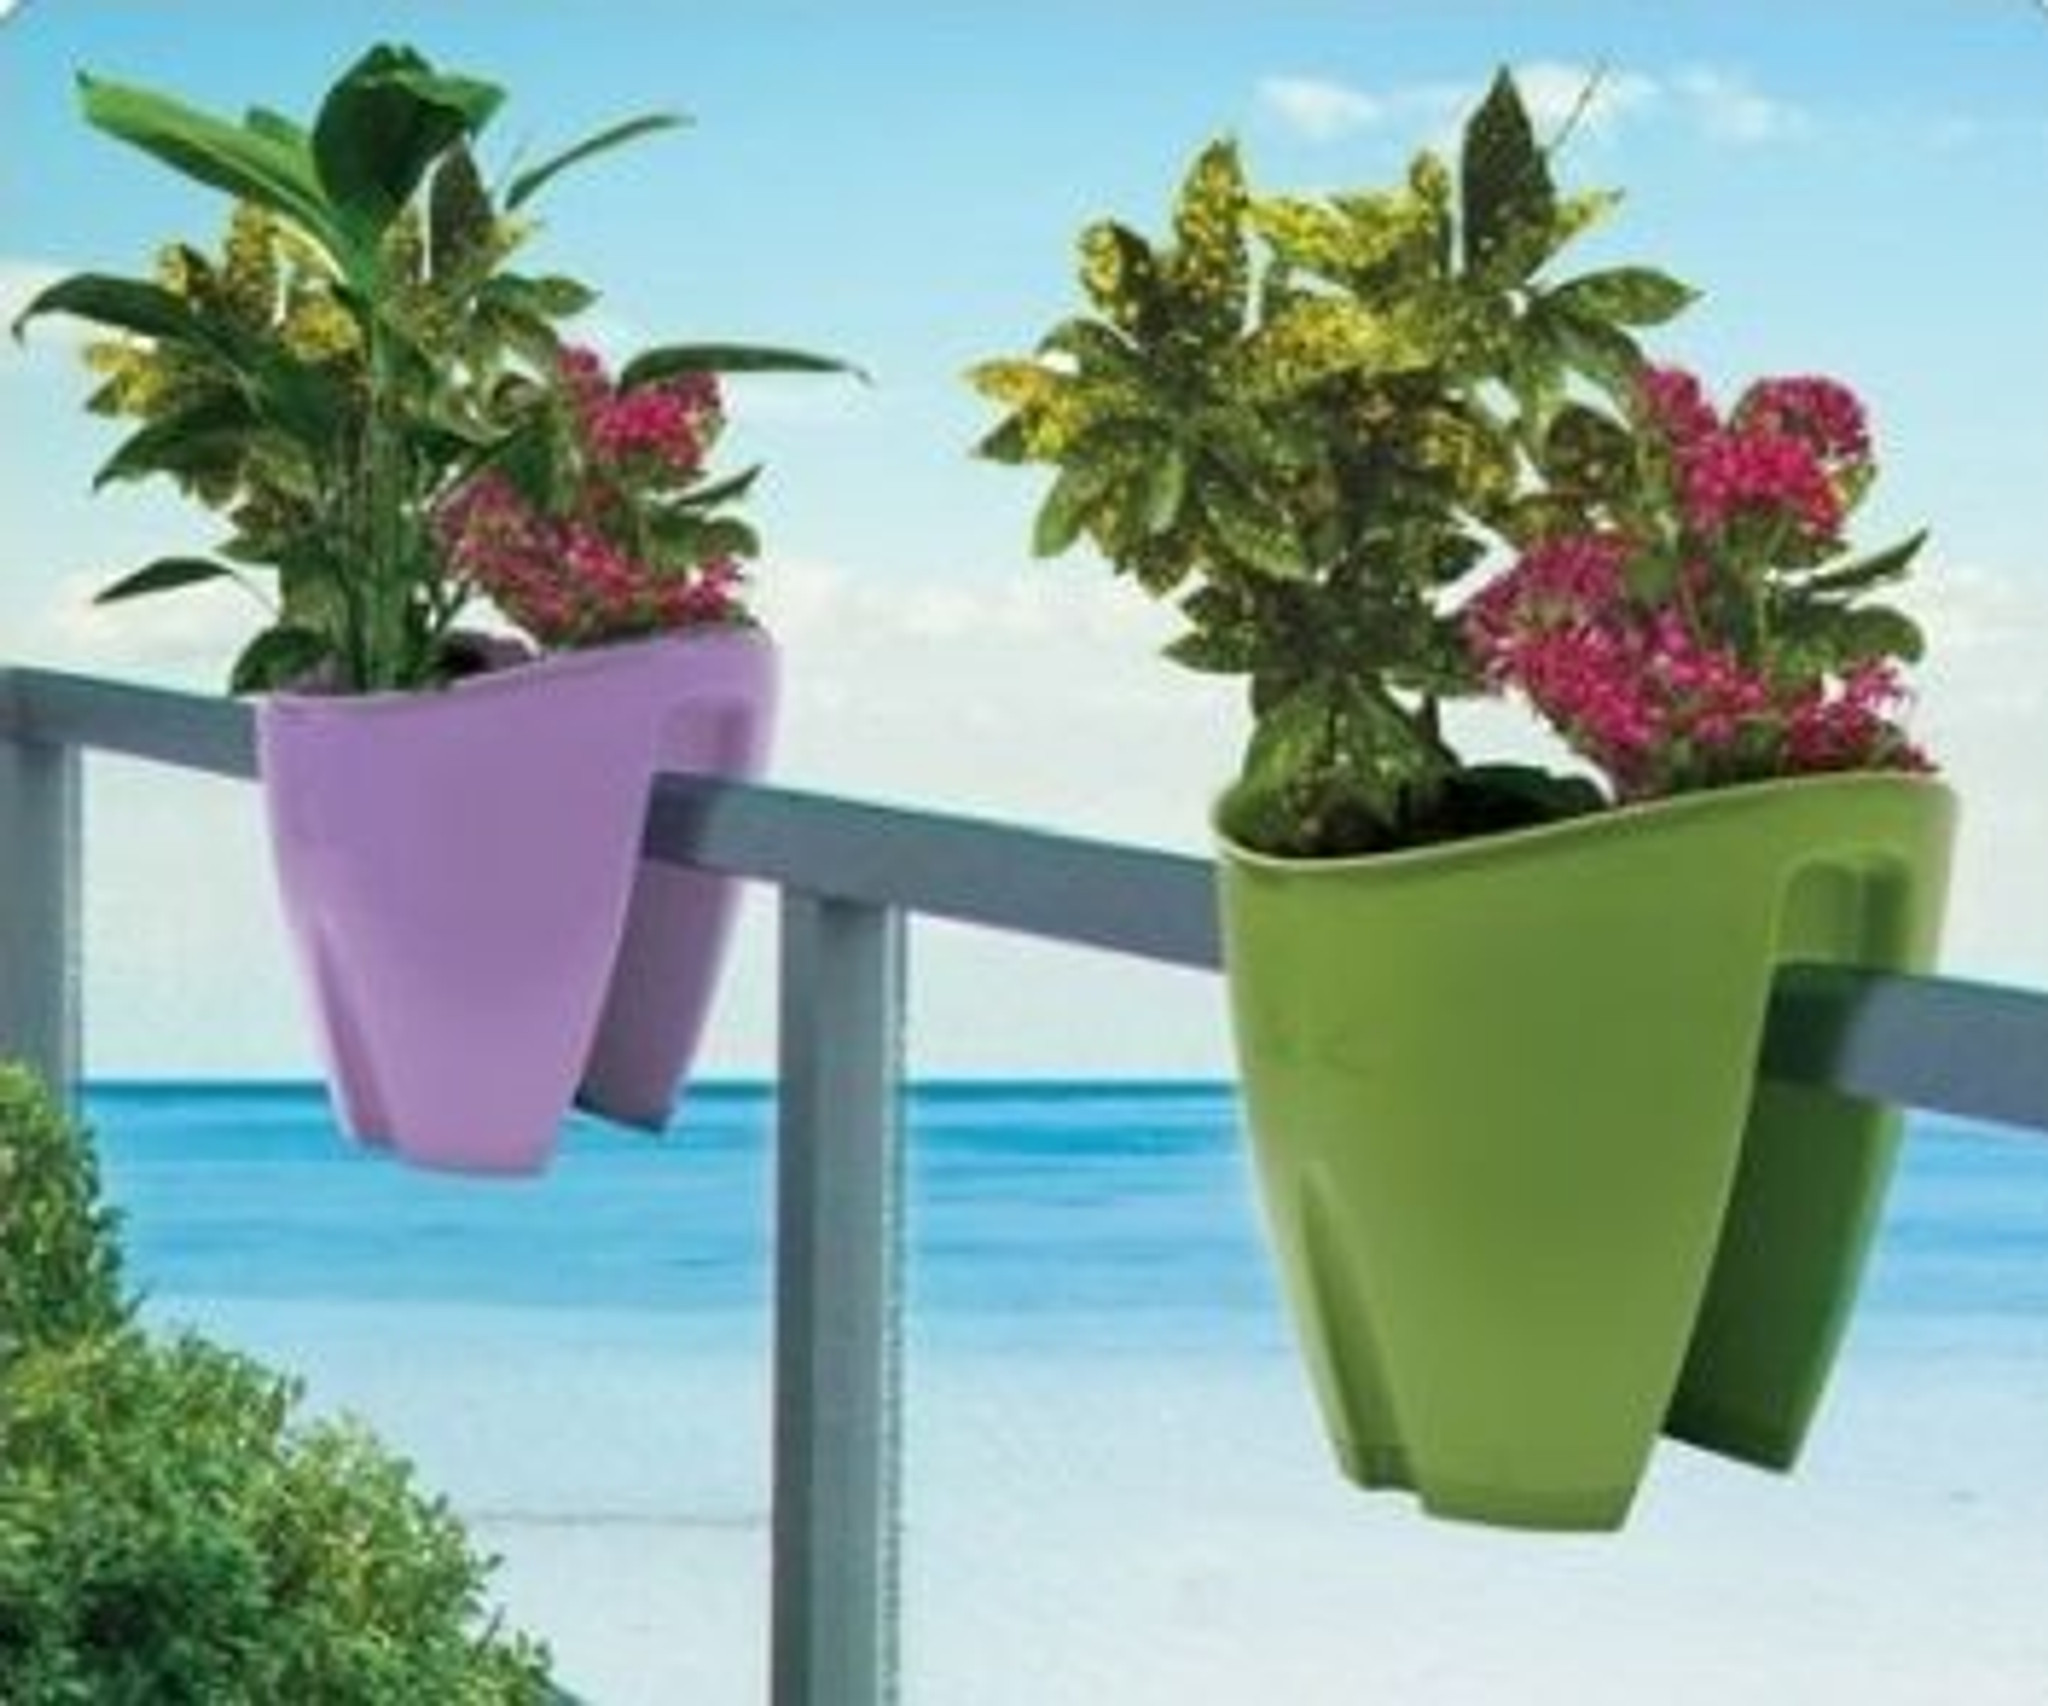 best4garden large railing planter for balconies with clever adjustable system